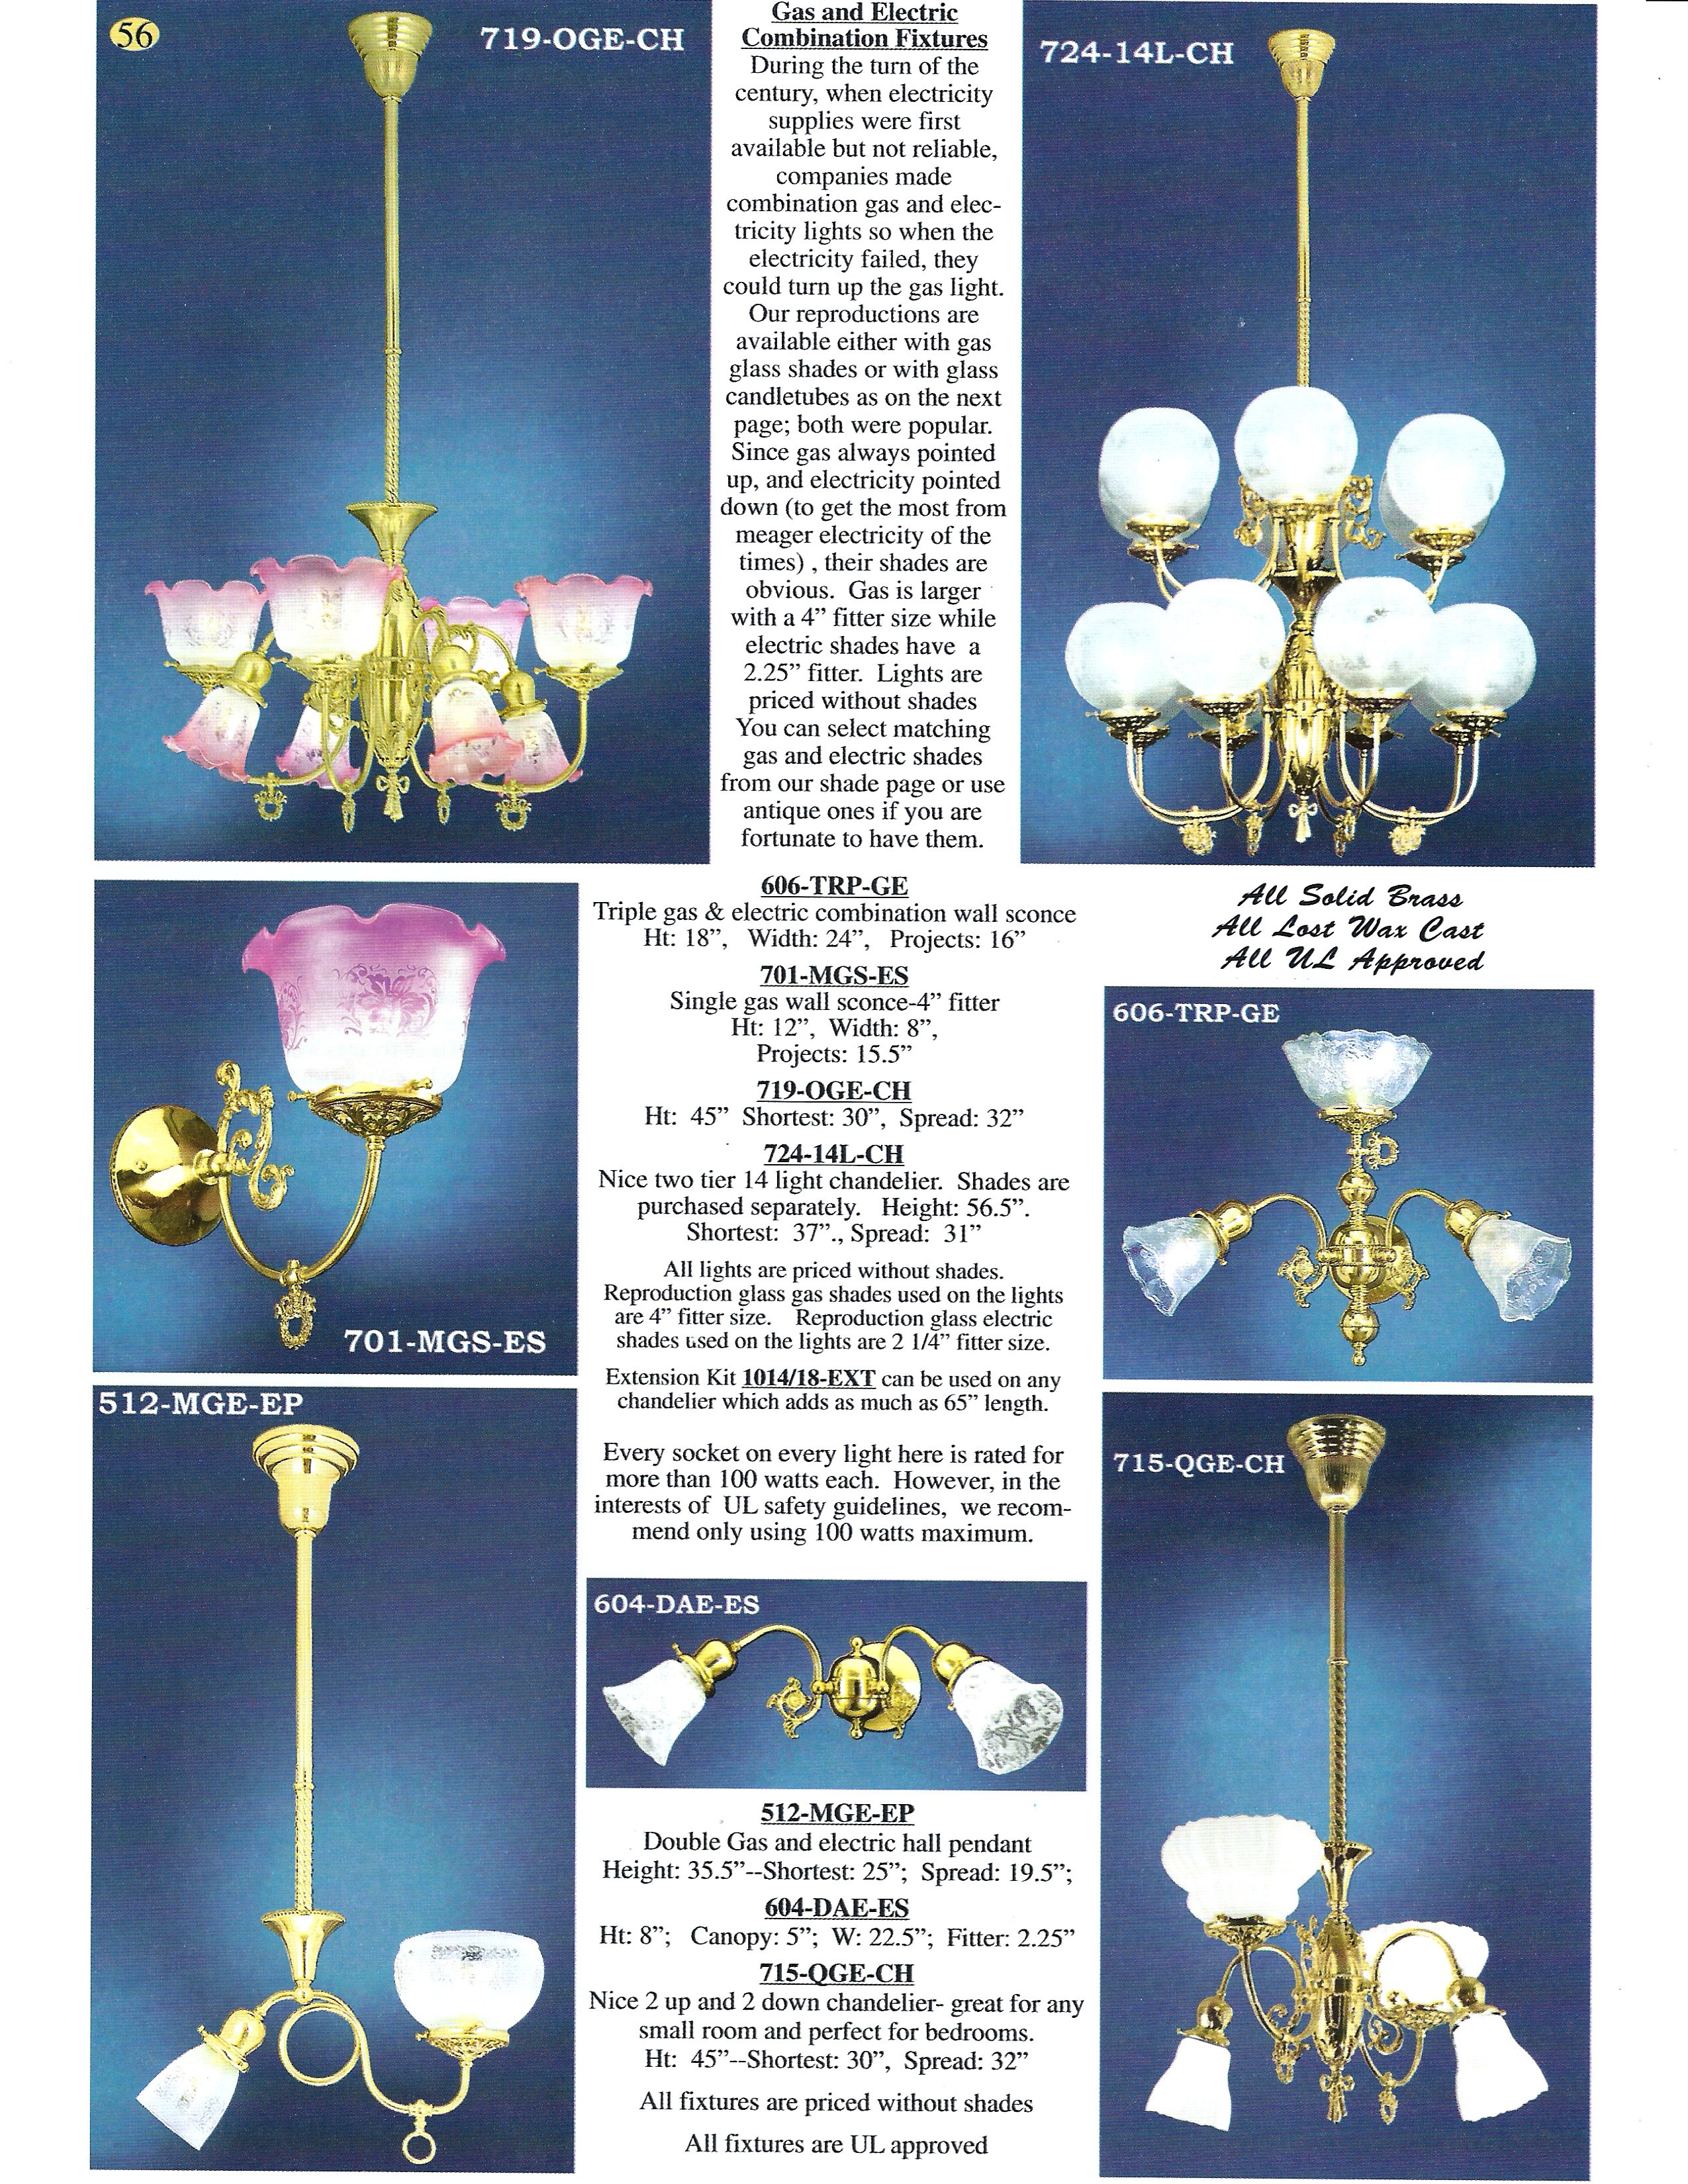 Catalog page 81